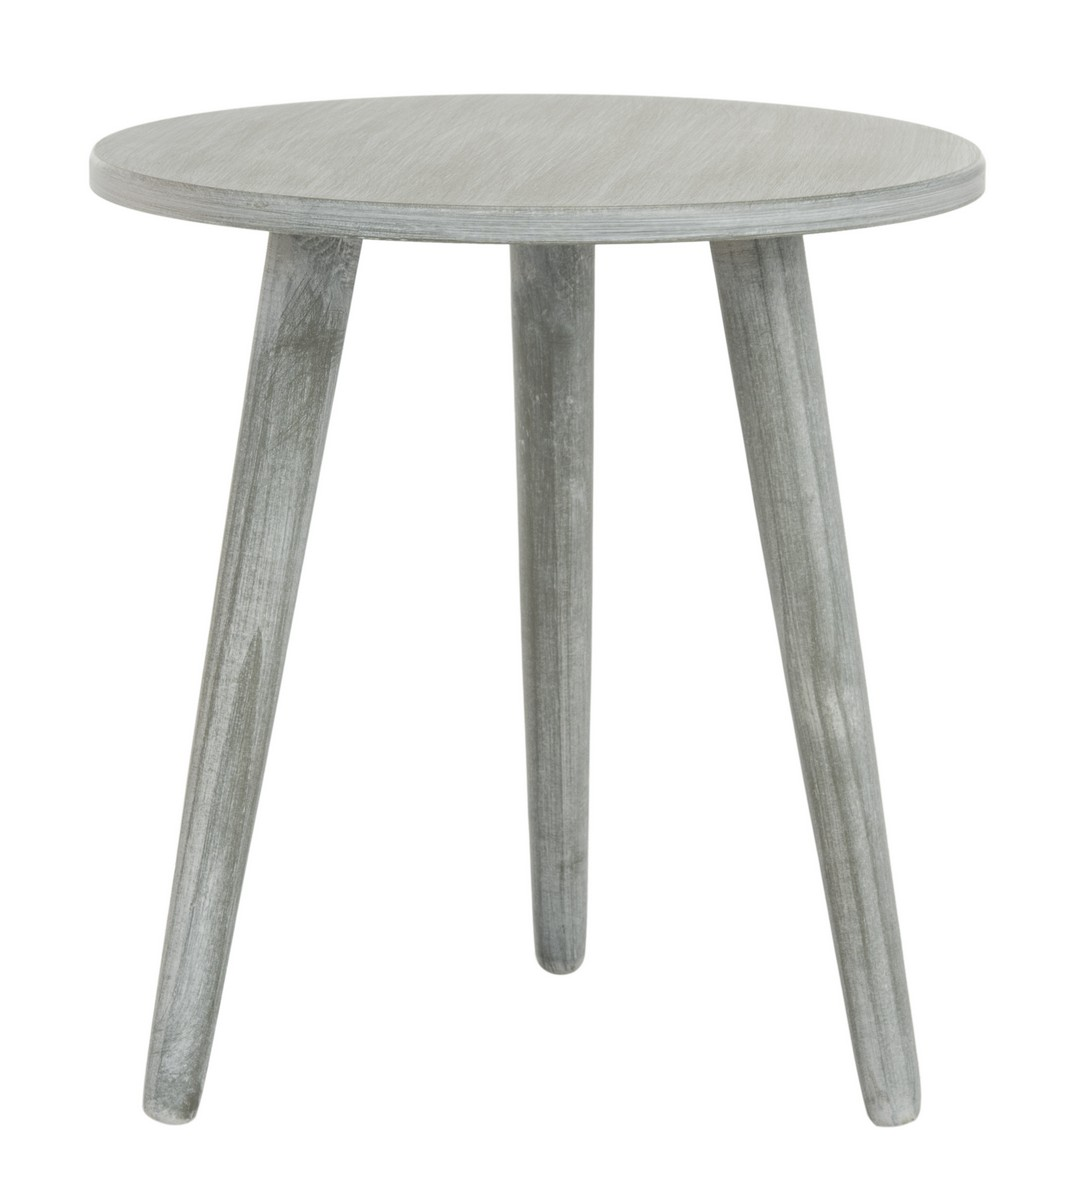 accent tables furniture safavieh front grey round table share this product carpet reducer stand bar outdoor cooler unique cabinets drum throne base linens real wood flooring slate